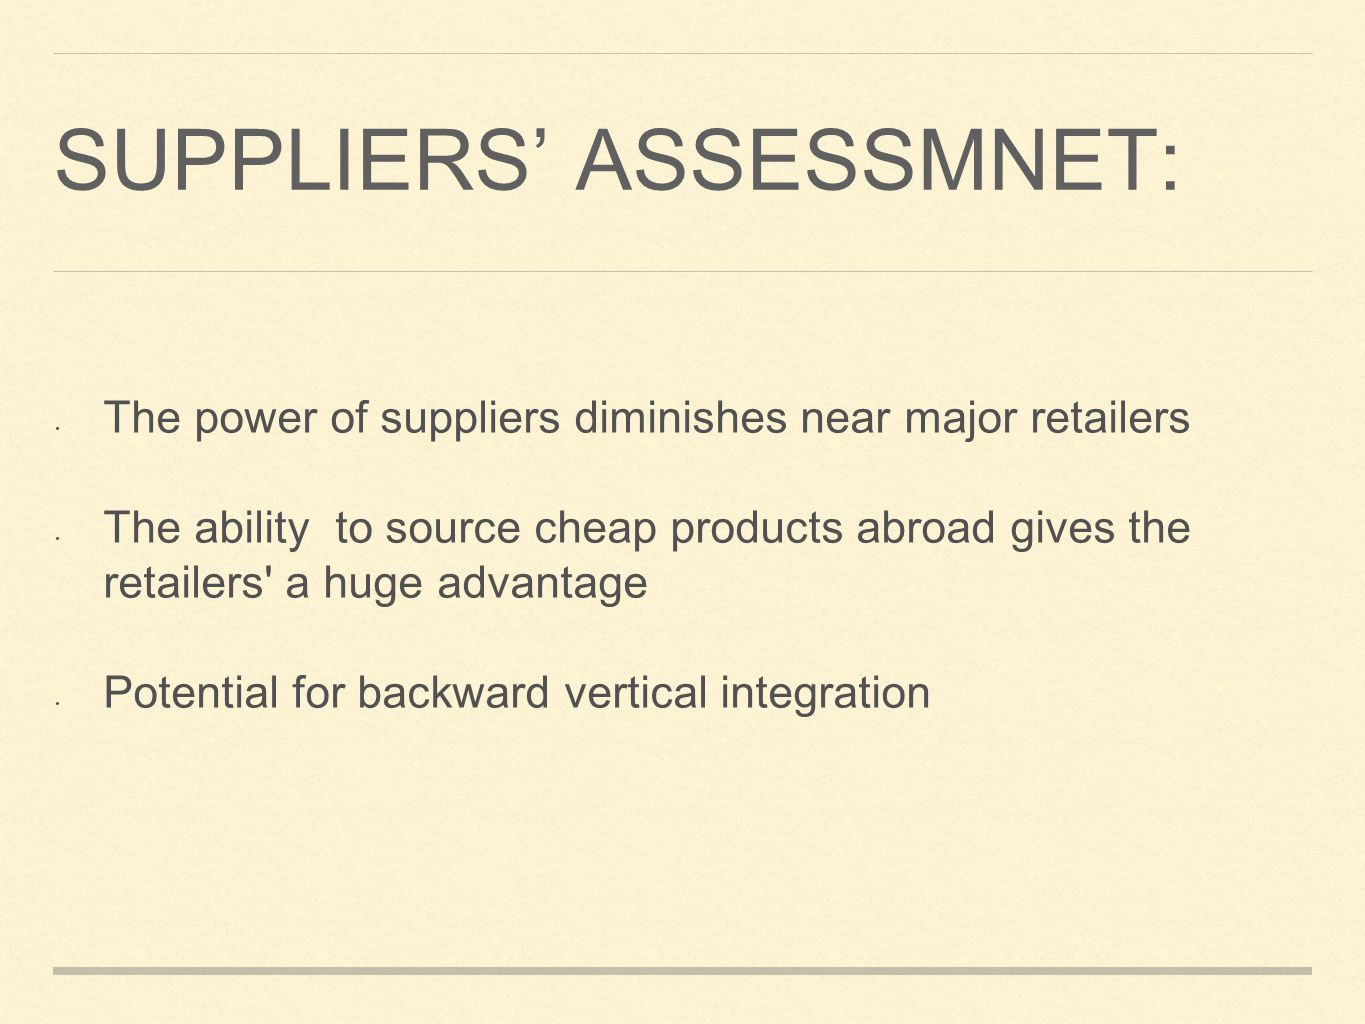 SUPPLIERS ASSESSMNET: The power of suppliers diminishes near major retailers The ability to source cheap products abroad gives the retailers a huge advantage Potential for backward vertical integration